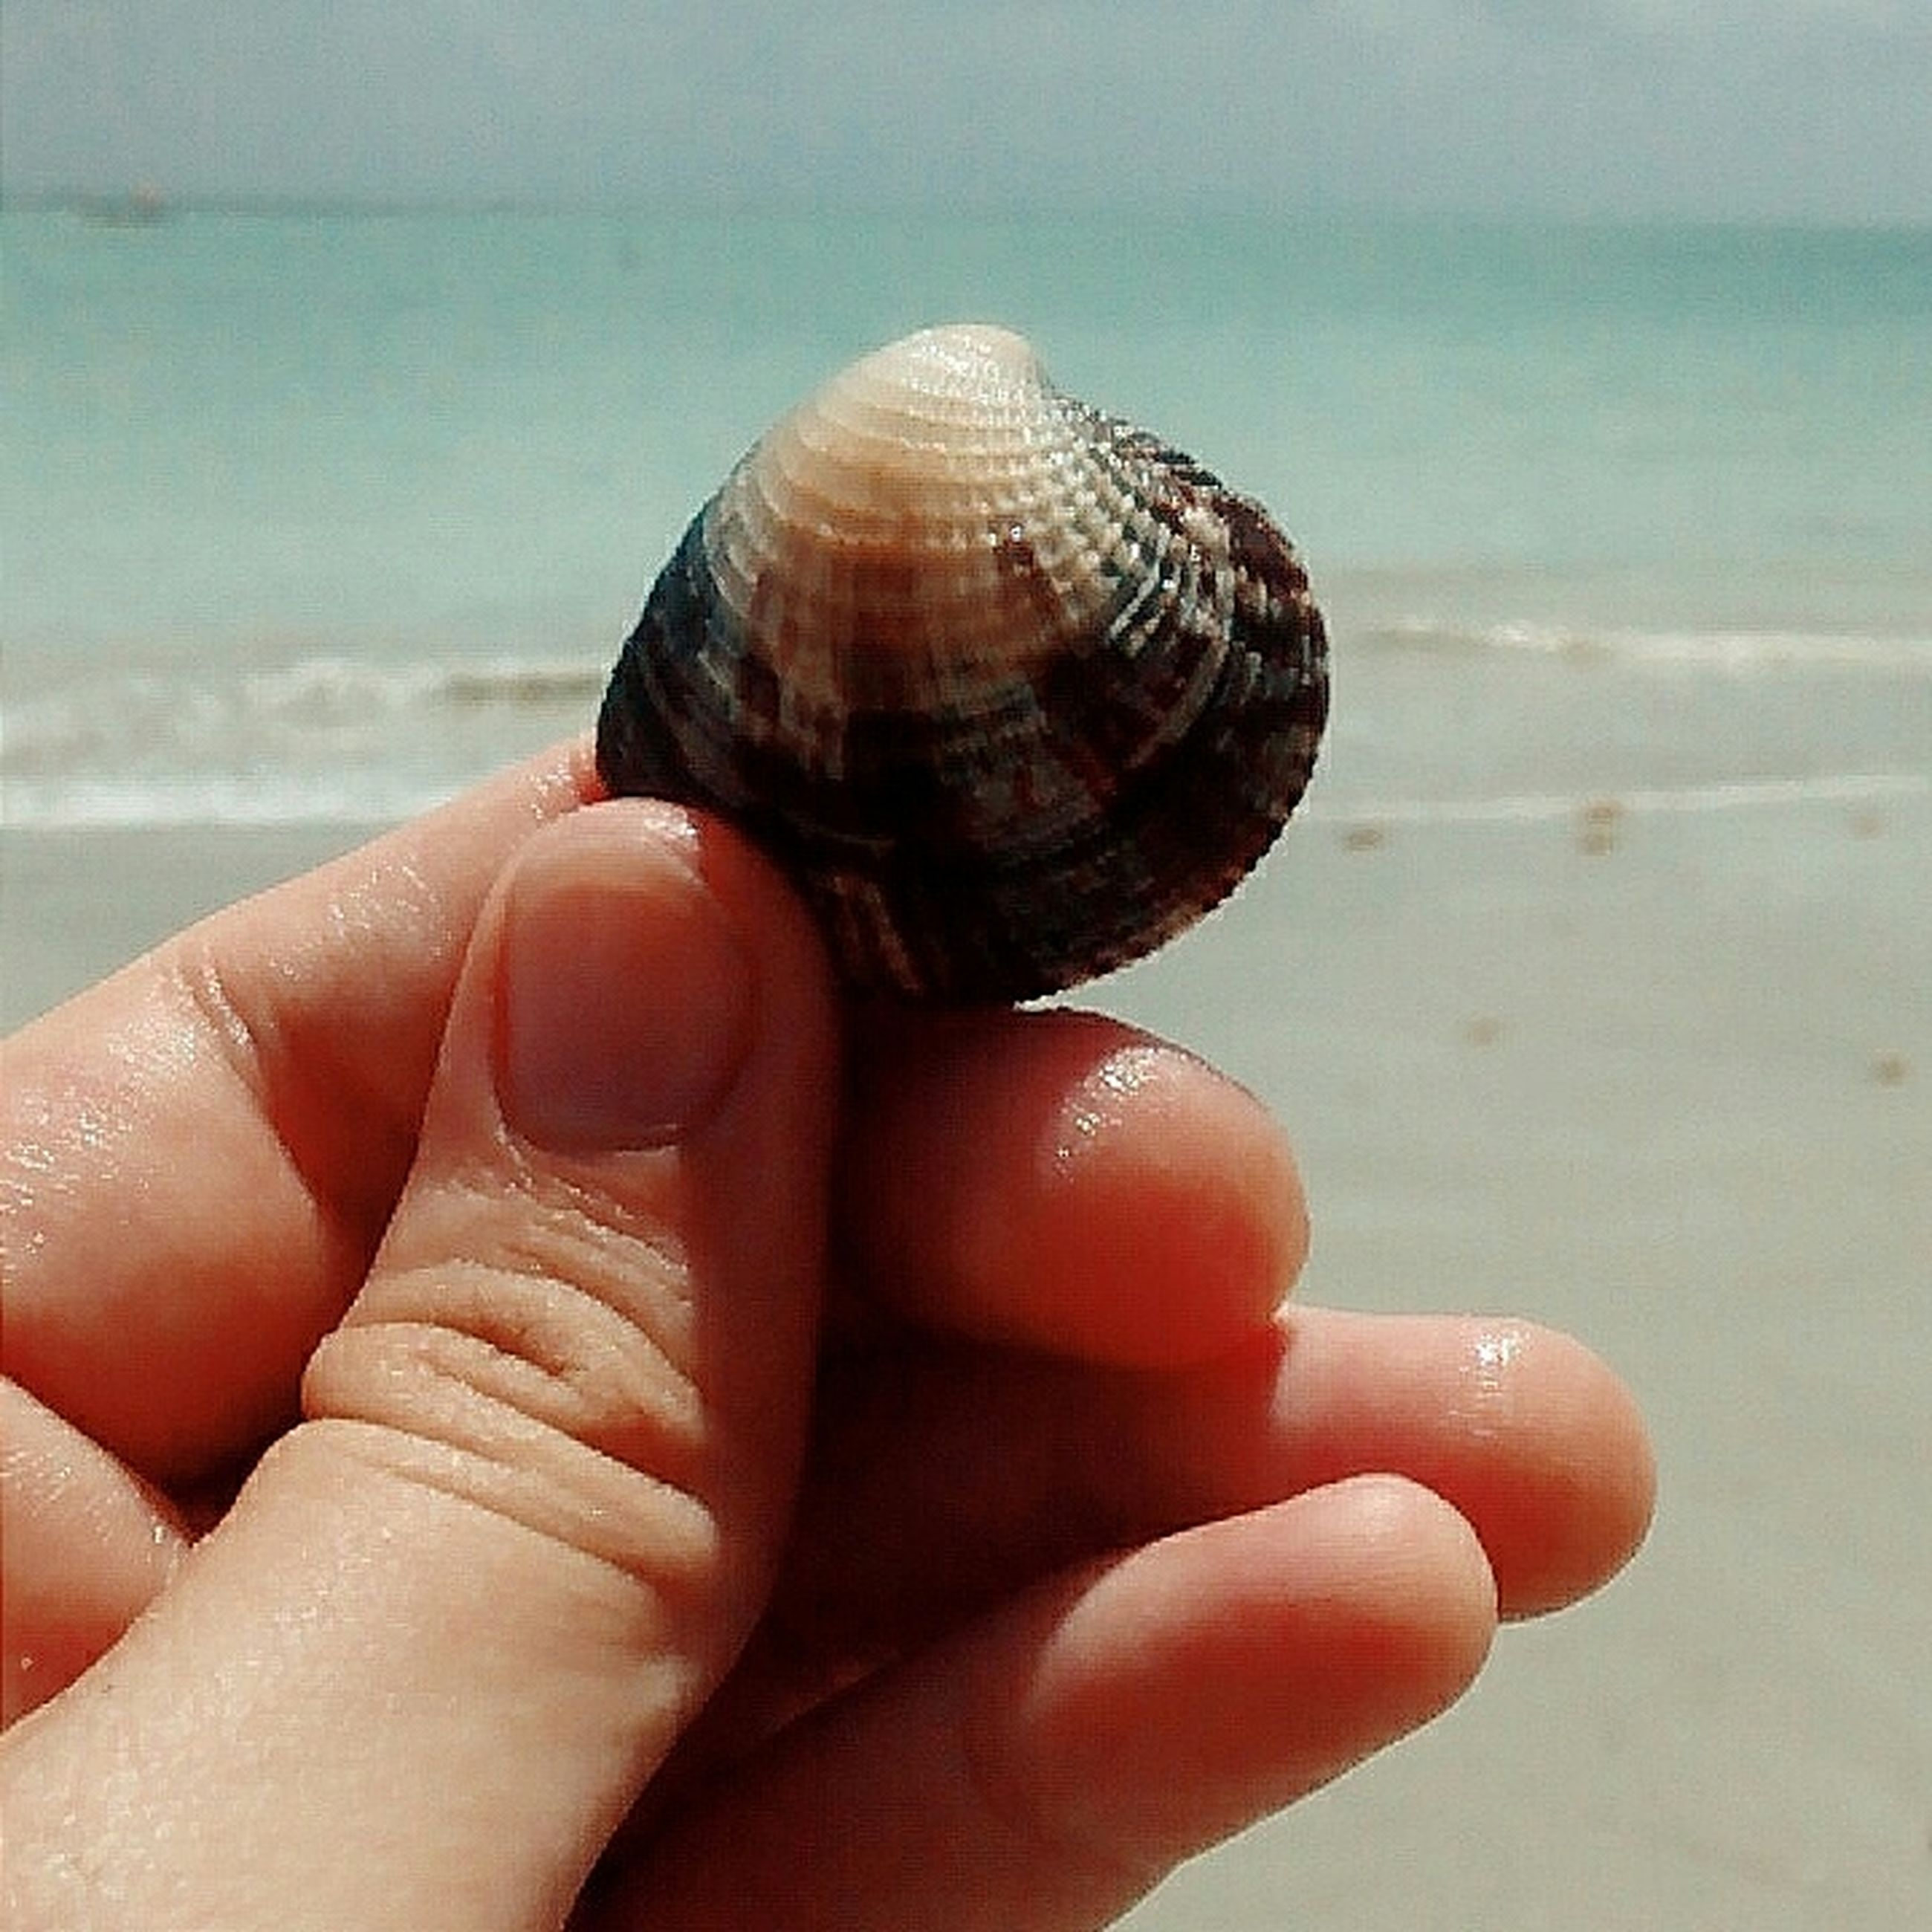 person, holding, beach, part of, personal perspective, human finger, sea, cropped, focus on foreground, unrecognizable person, close-up, sand, animal shell, seashell, horizon over water, lifestyles, leisure activity